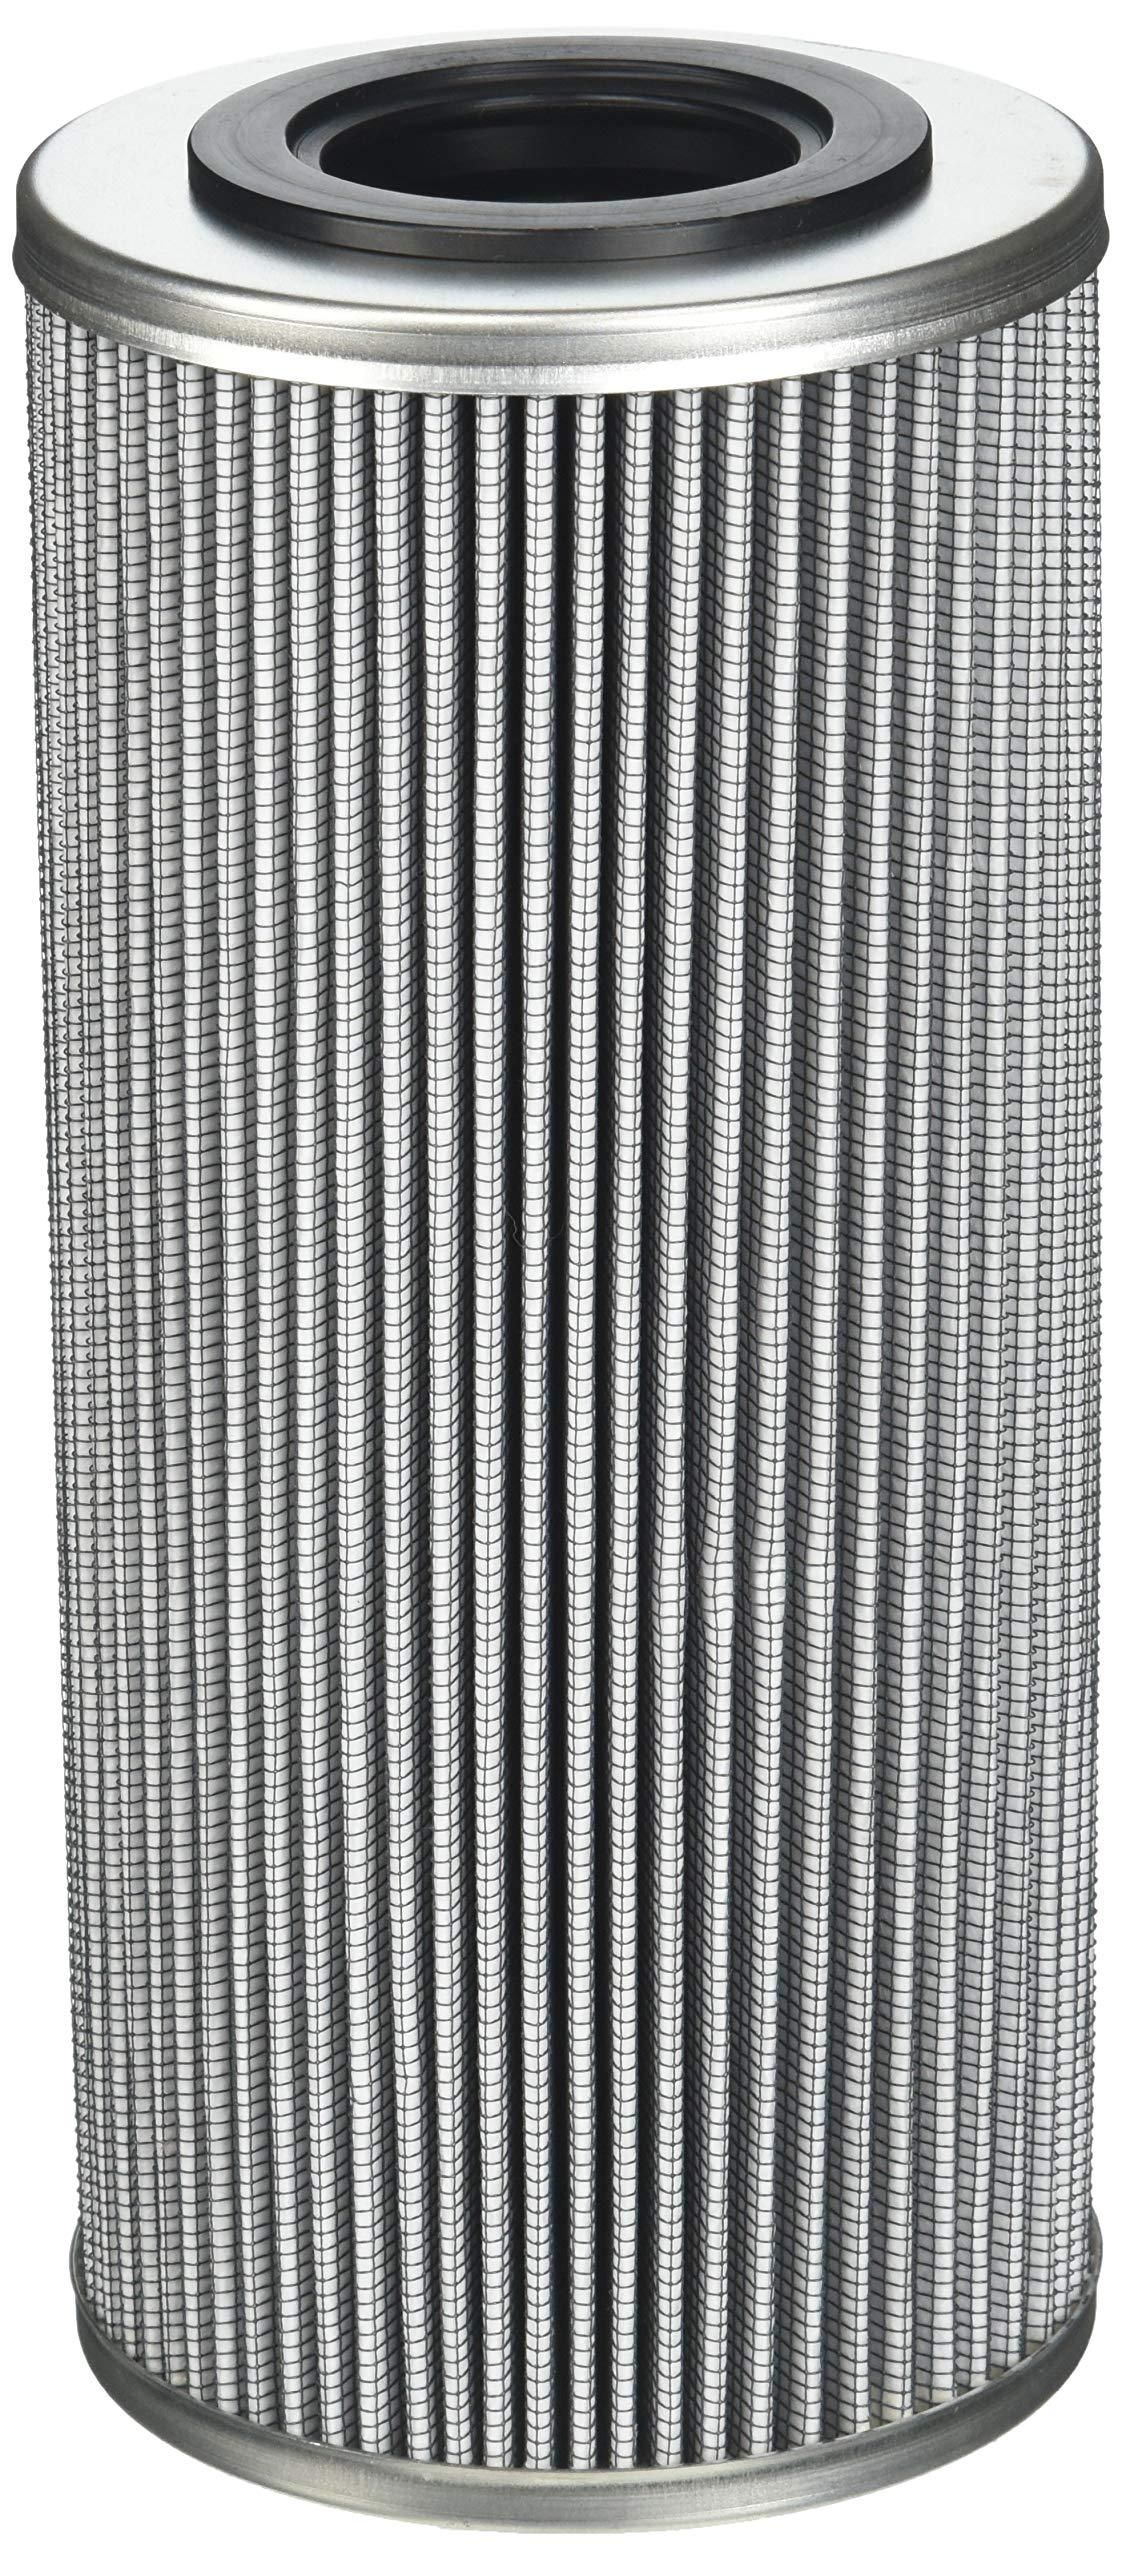 WIX Filters - 57342 Heavy Duty Cartridge Hydraulic Metal, Pack of 1 by Wix